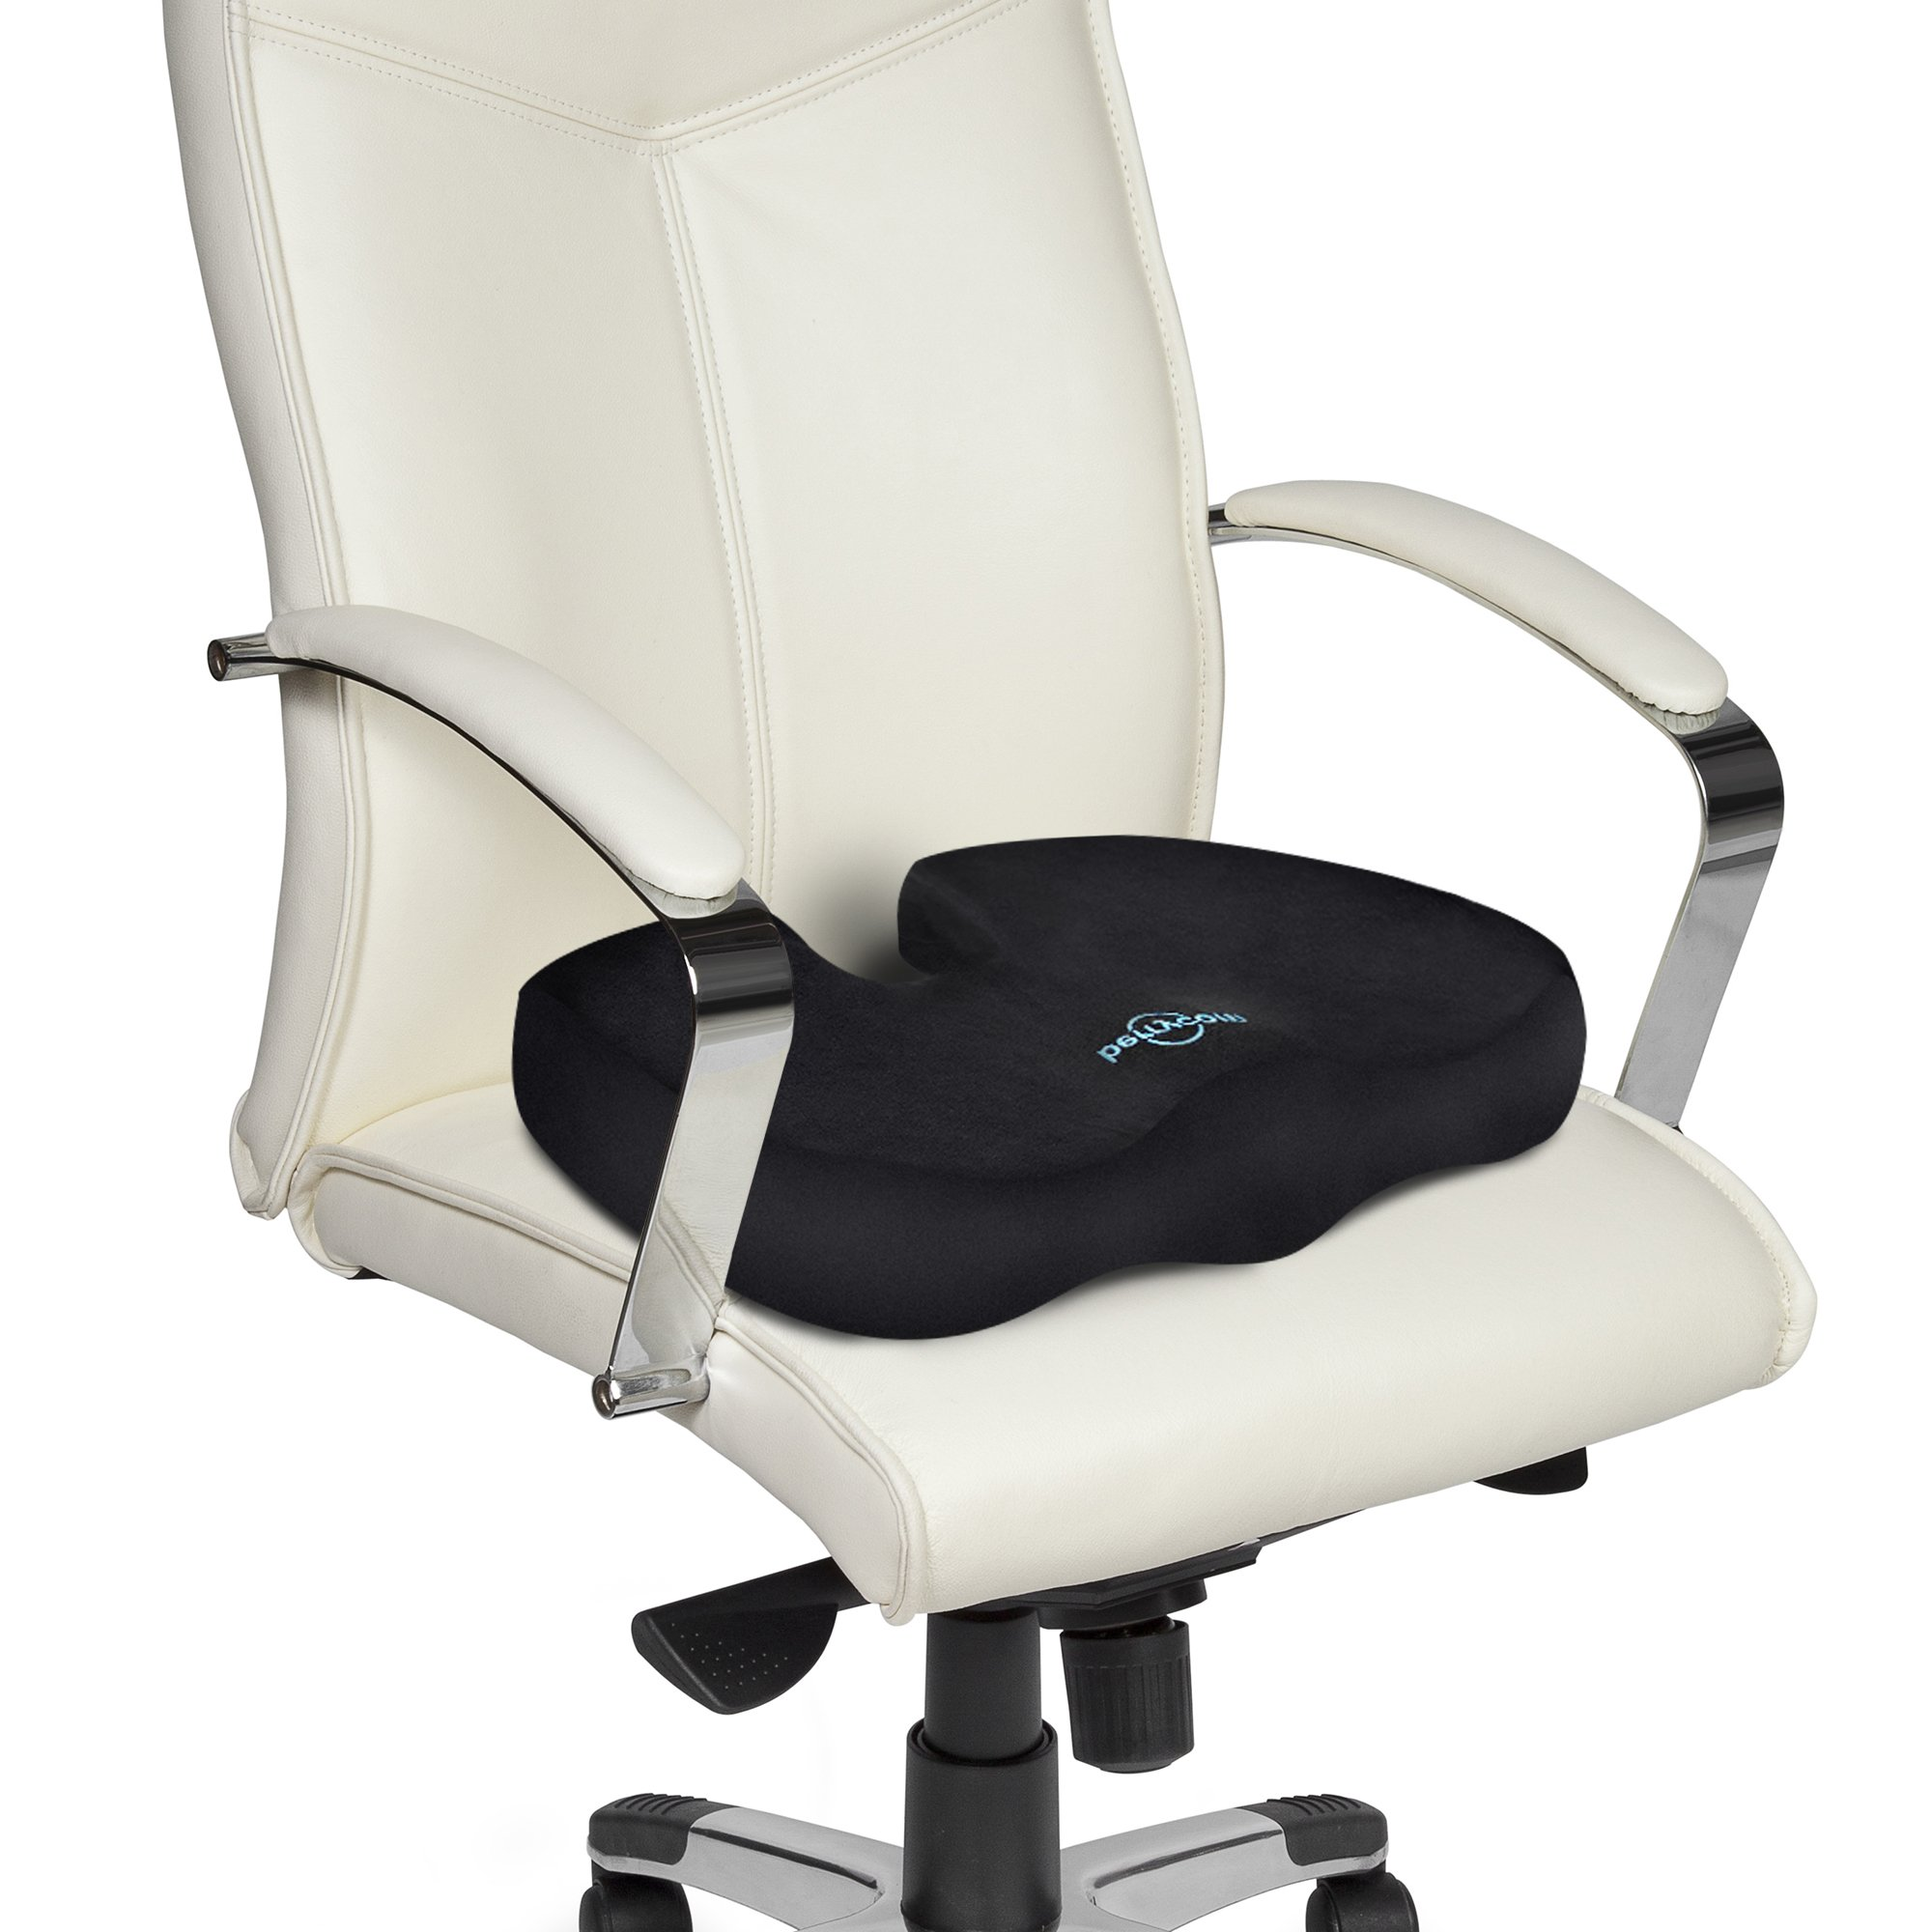 Coccyx Seat Cushion - Comfortable & Supportive Memory Foam with Orthopedic Design Relieves Back, Sciatica and Tailbone Pain. Our Seat Pillow is great for office chair, car seat, wheelchair, plane by Berrycom (Image #5)